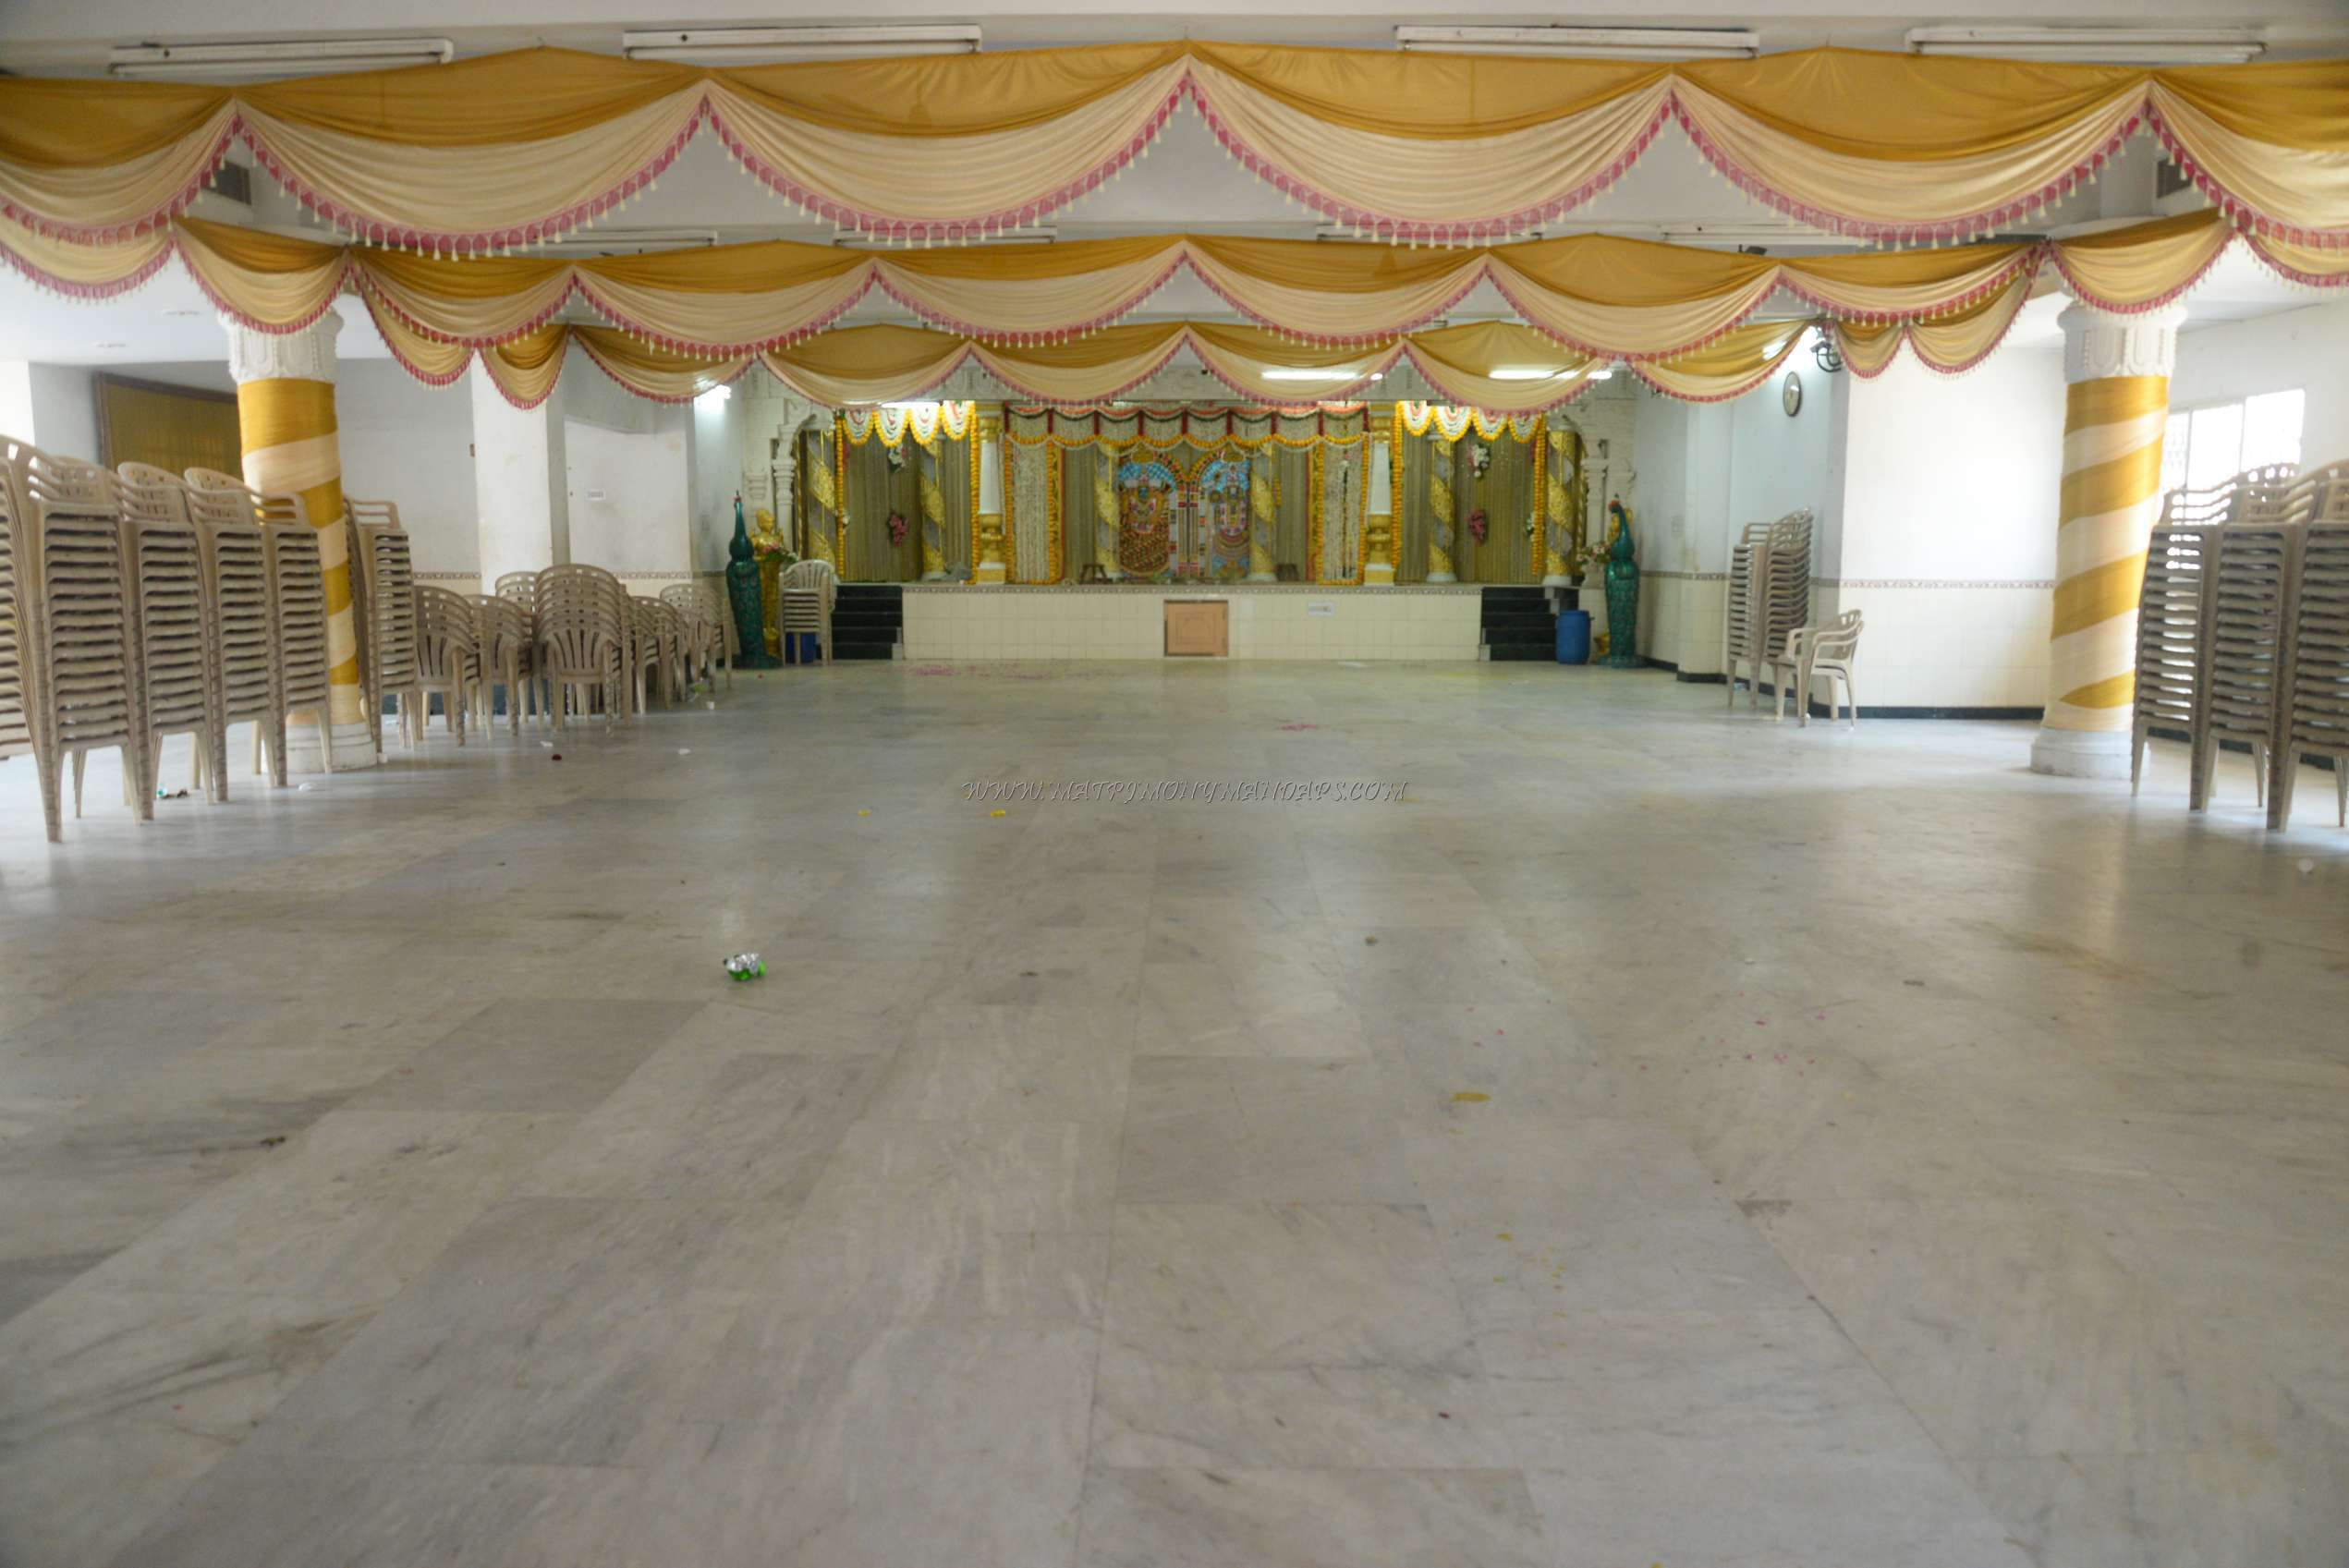 Find the availability of the Sri Murugan Thirumana Mandapam (A/C) in Velachery, Chennai and avail special offers